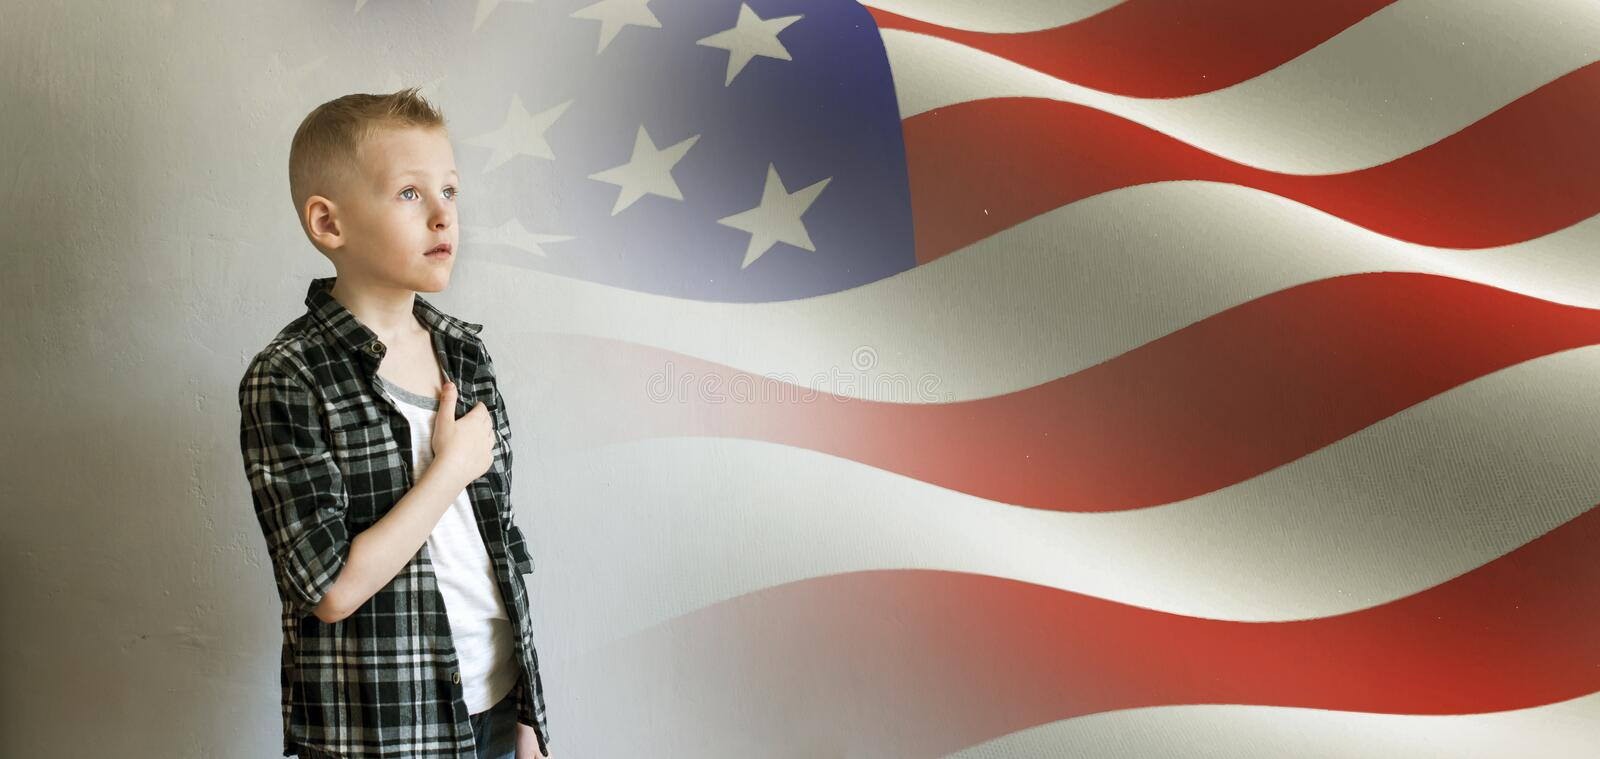 Little boy and American flag. Proud boy paying tribute to American flag royalty free stock photography